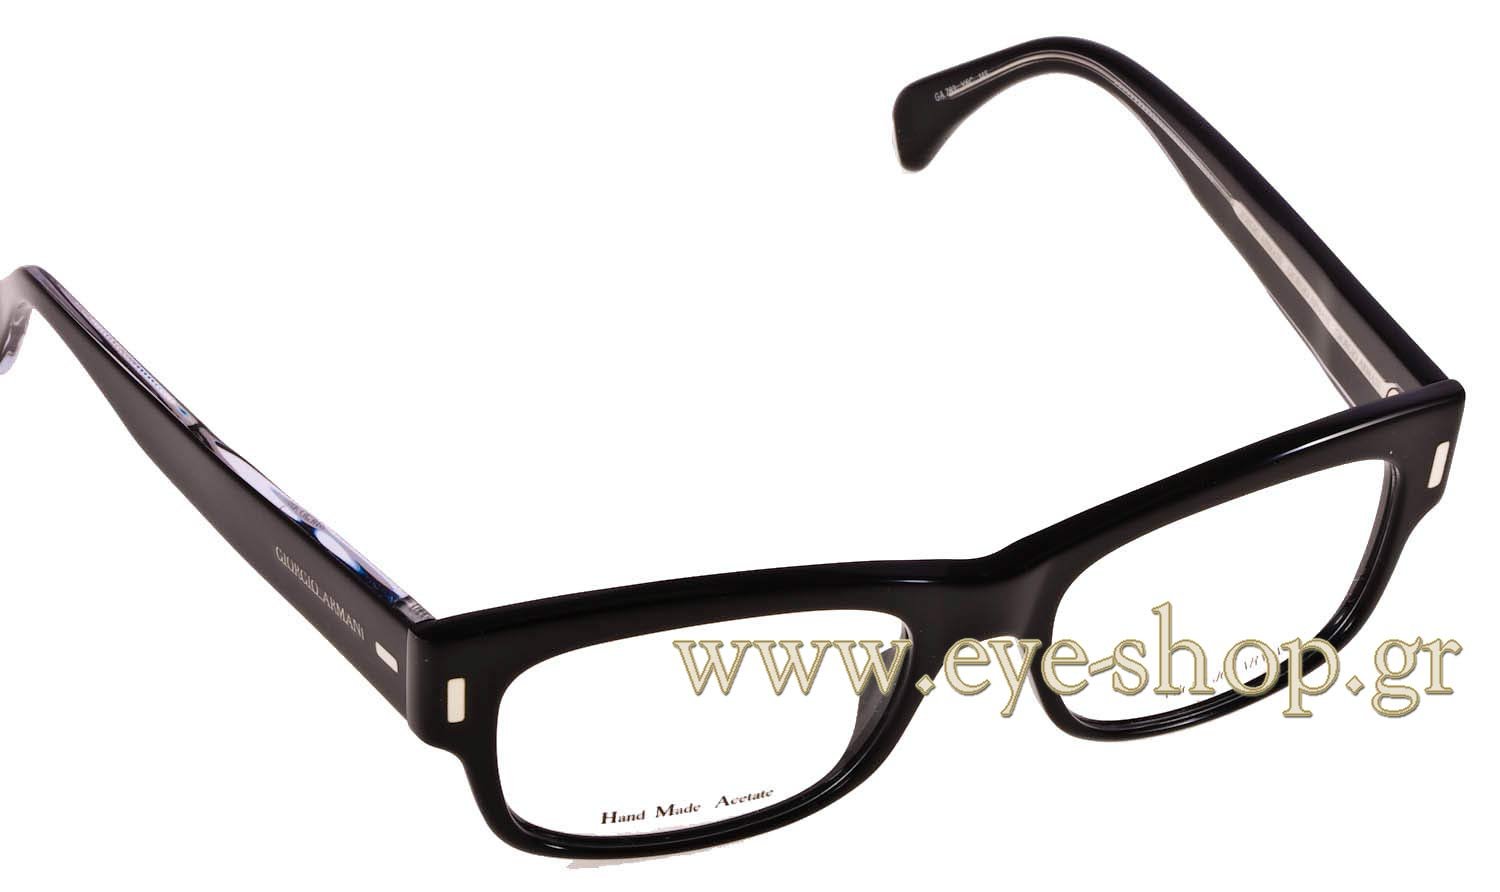 Gucci Eyeglass Frame Parts : ARMANI EYEGLASS PARTS Glass Eyes Online